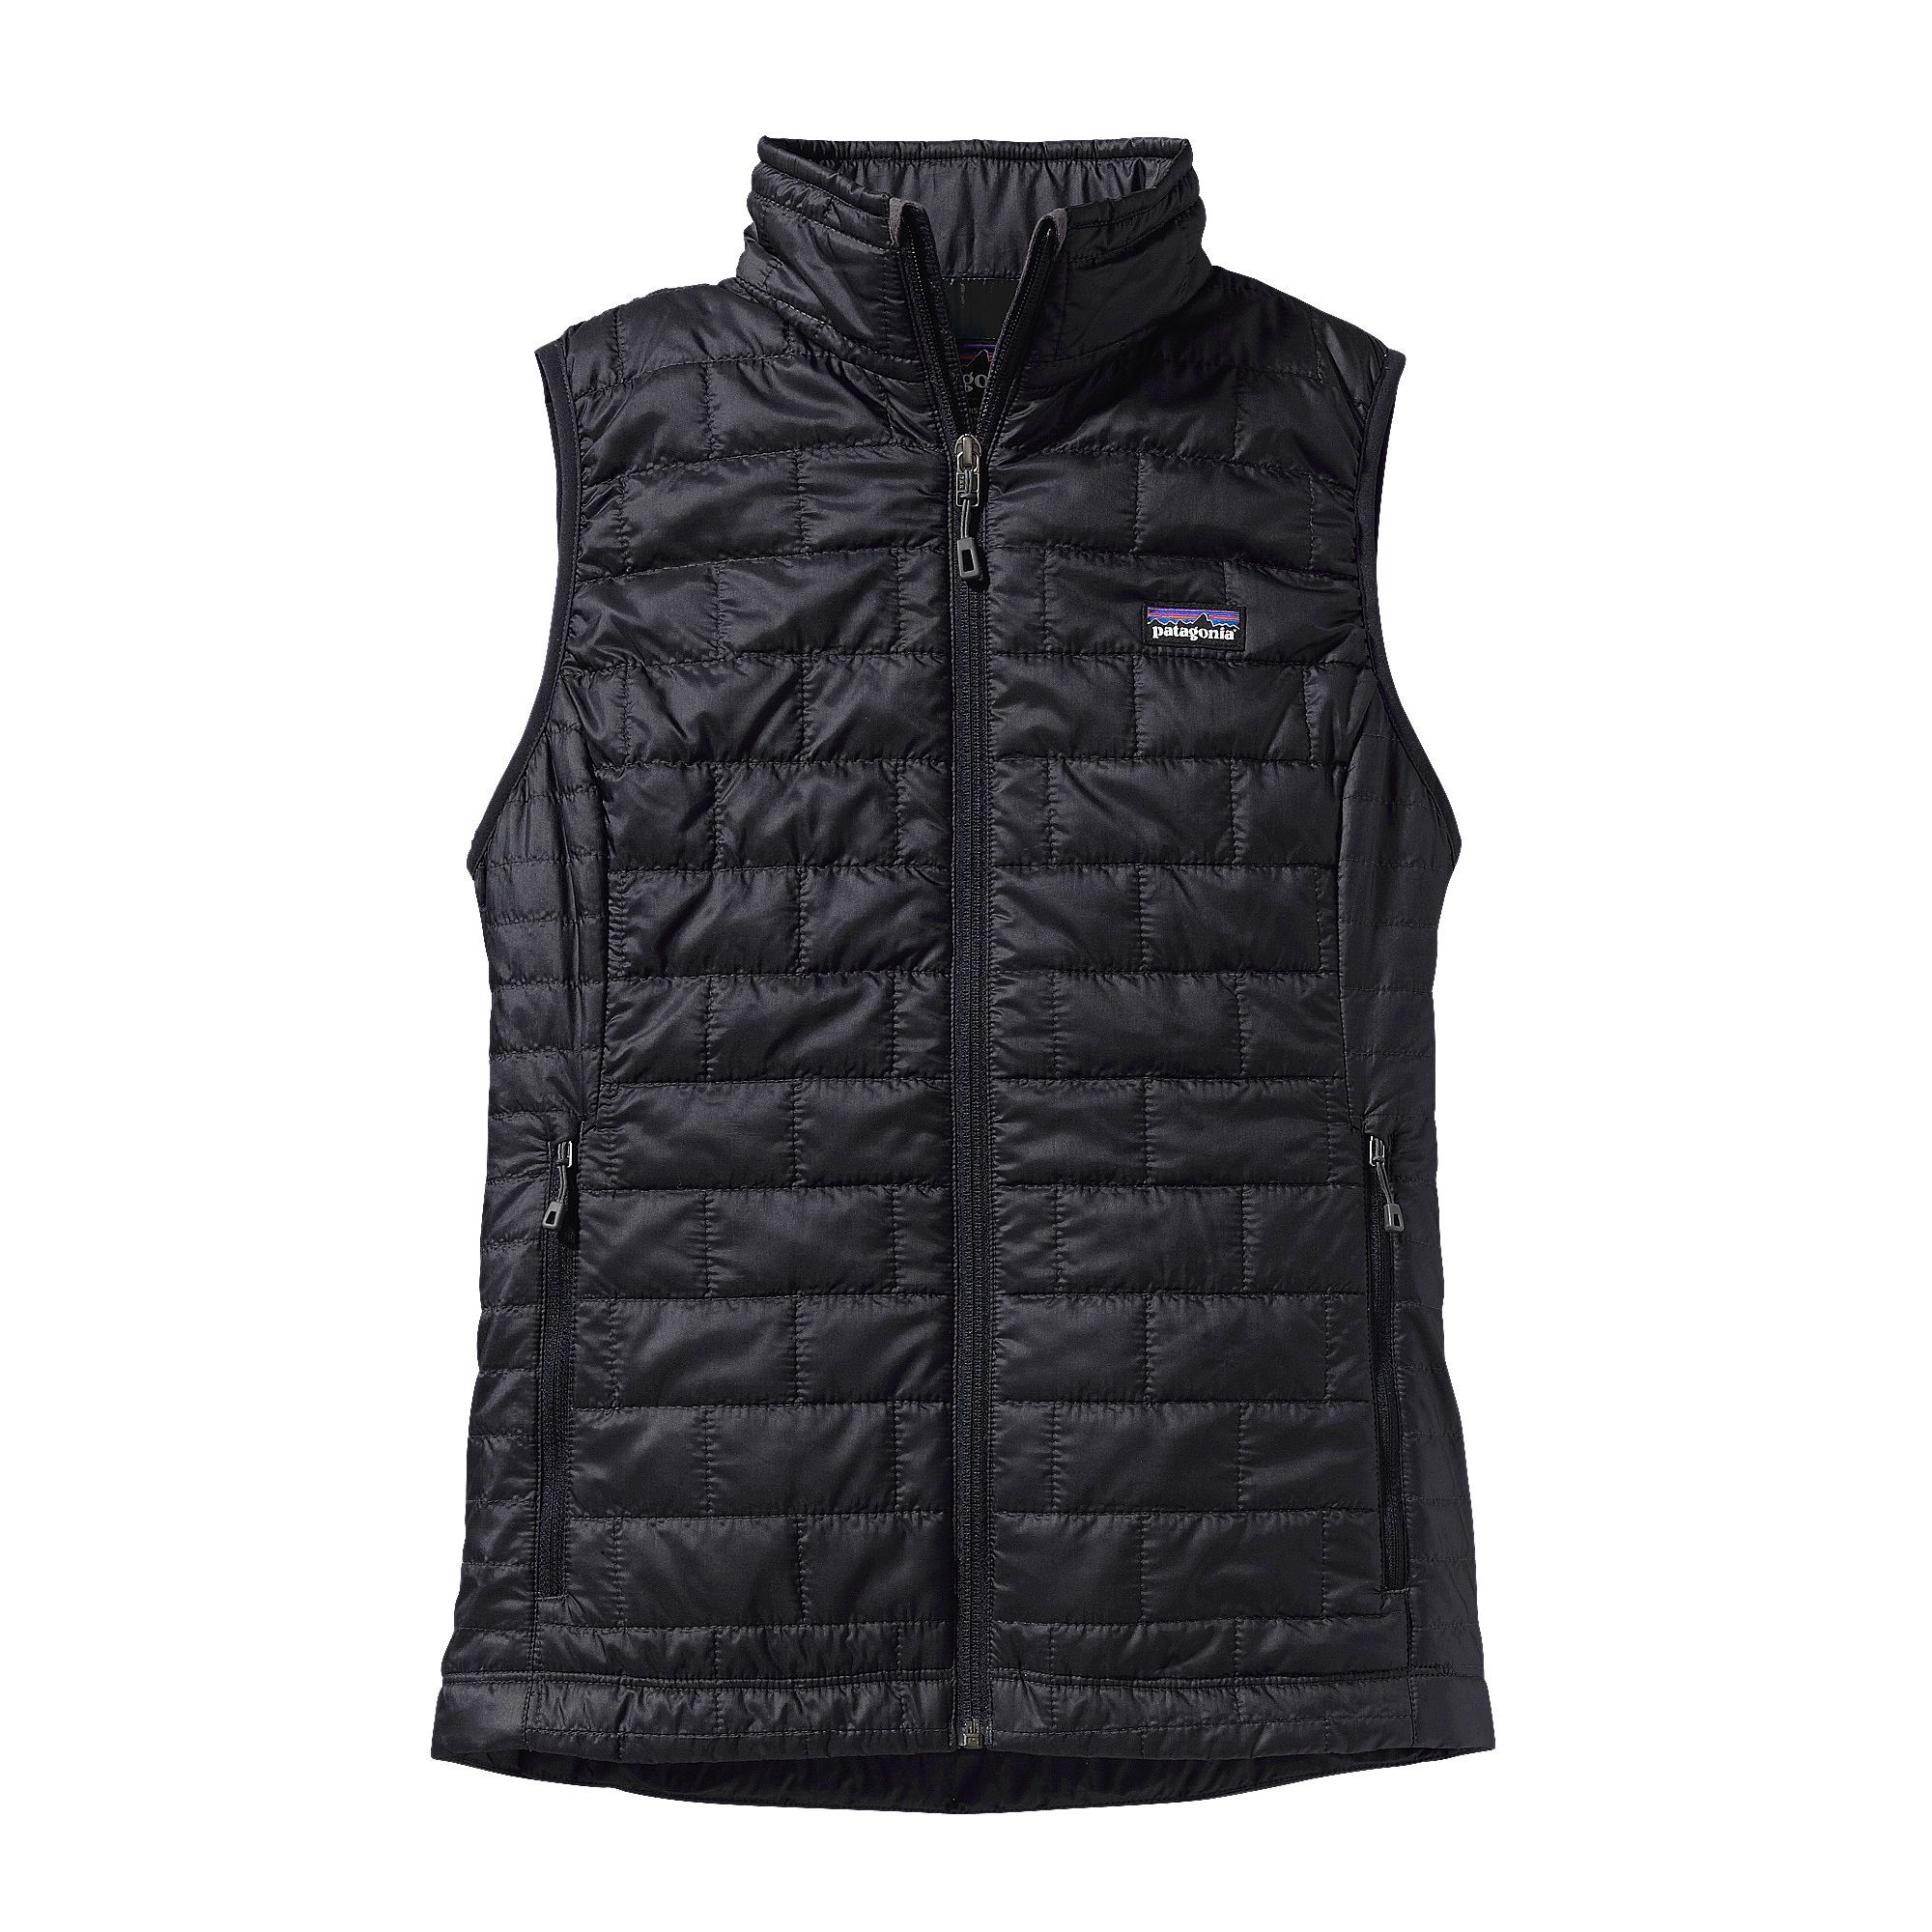 Asics Mens Padded Gilet Grey Sports Running Warm Breathable Lightweight